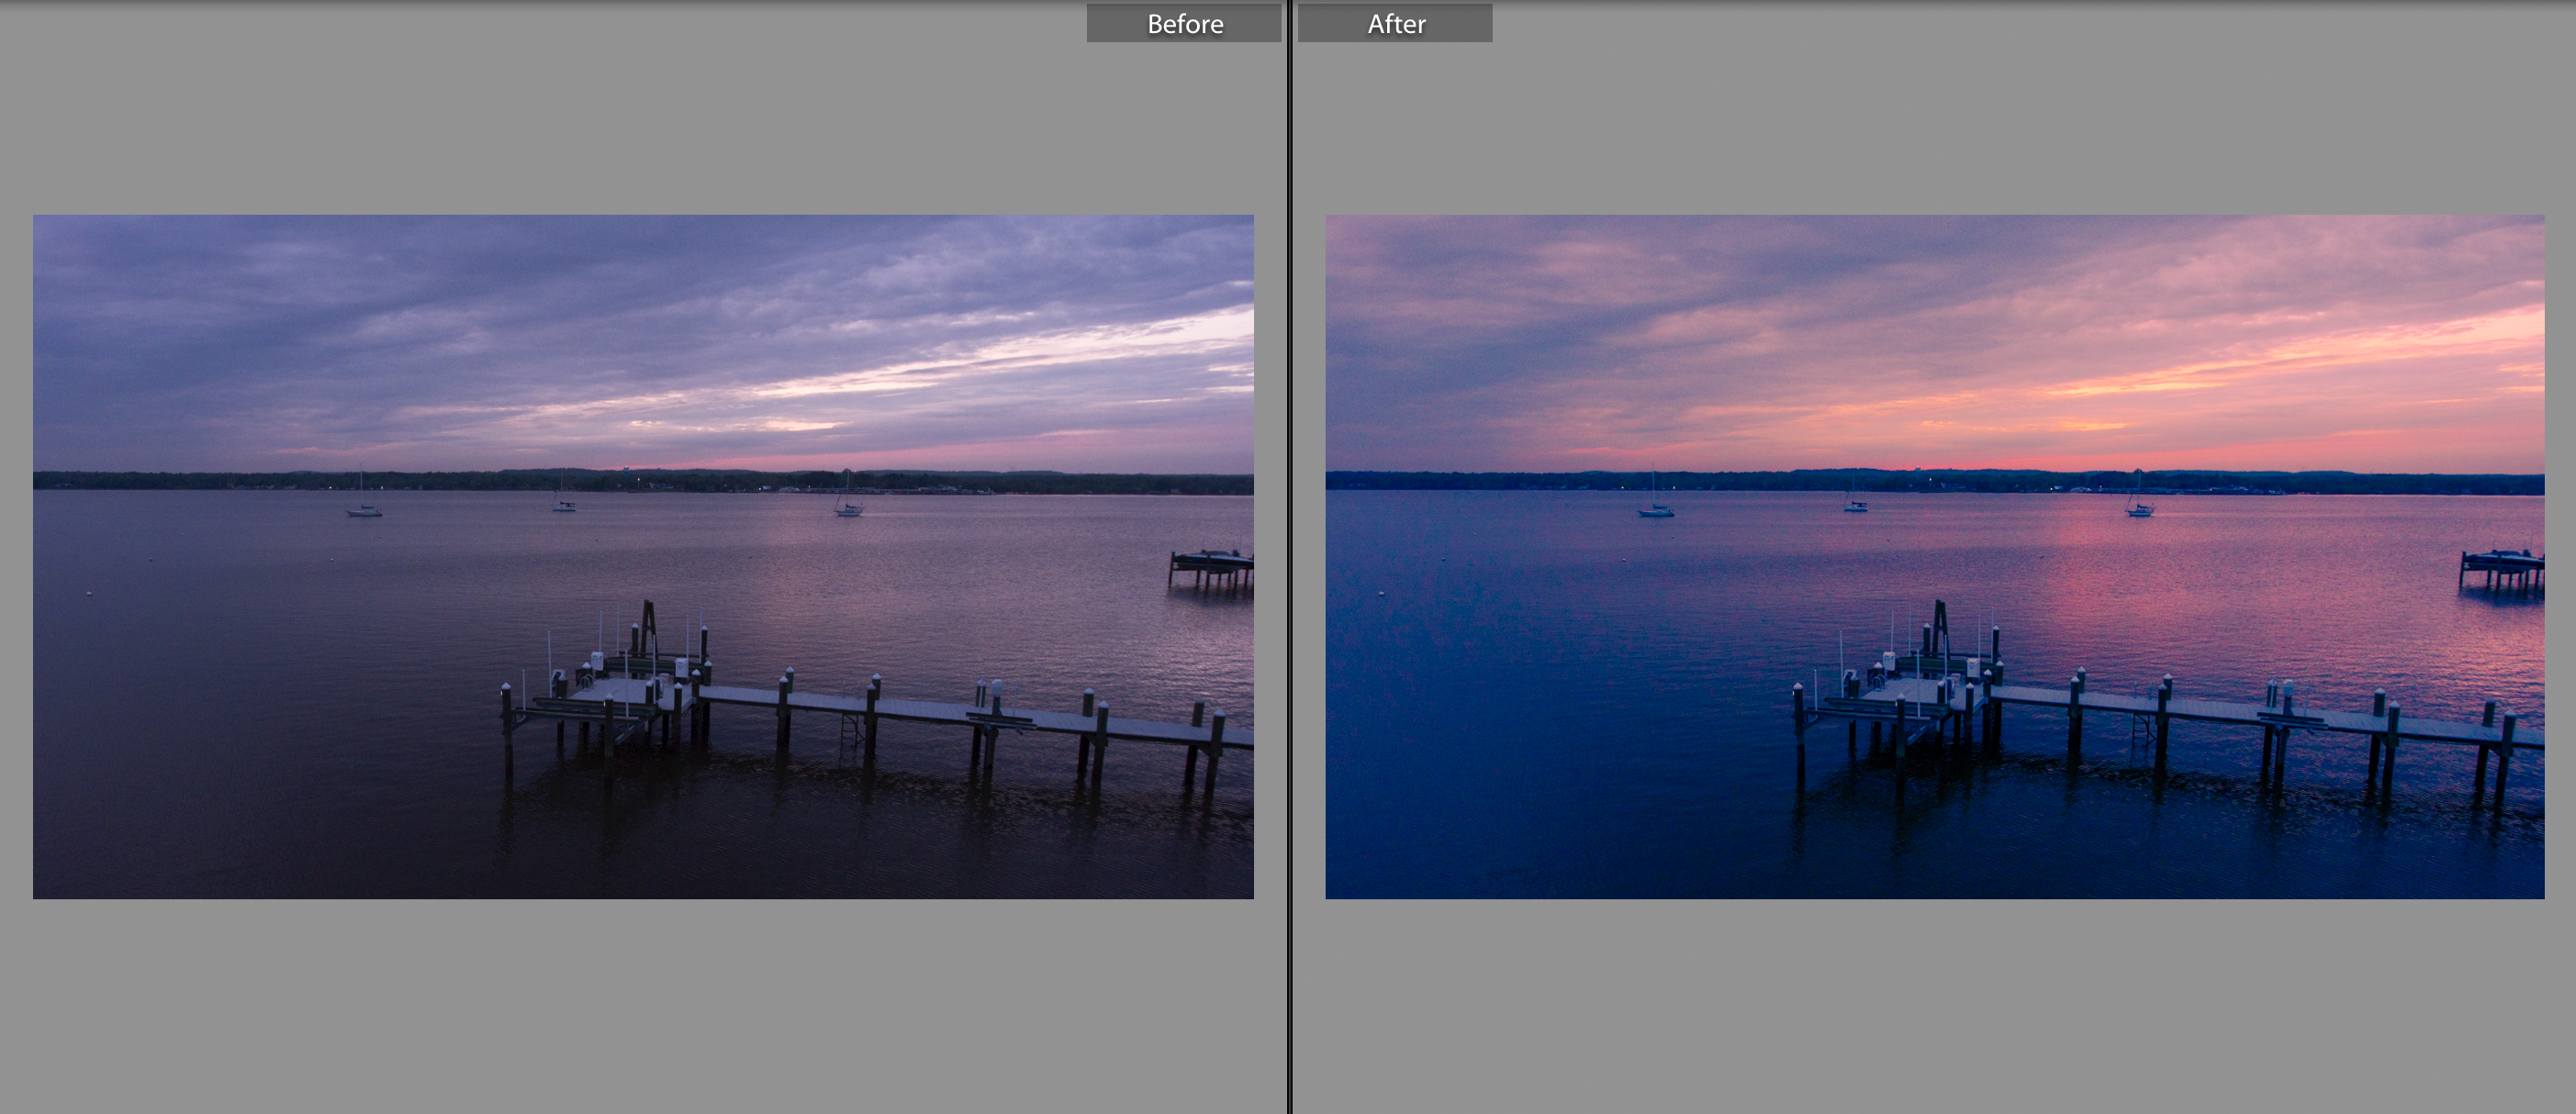 Sunset Glory before after